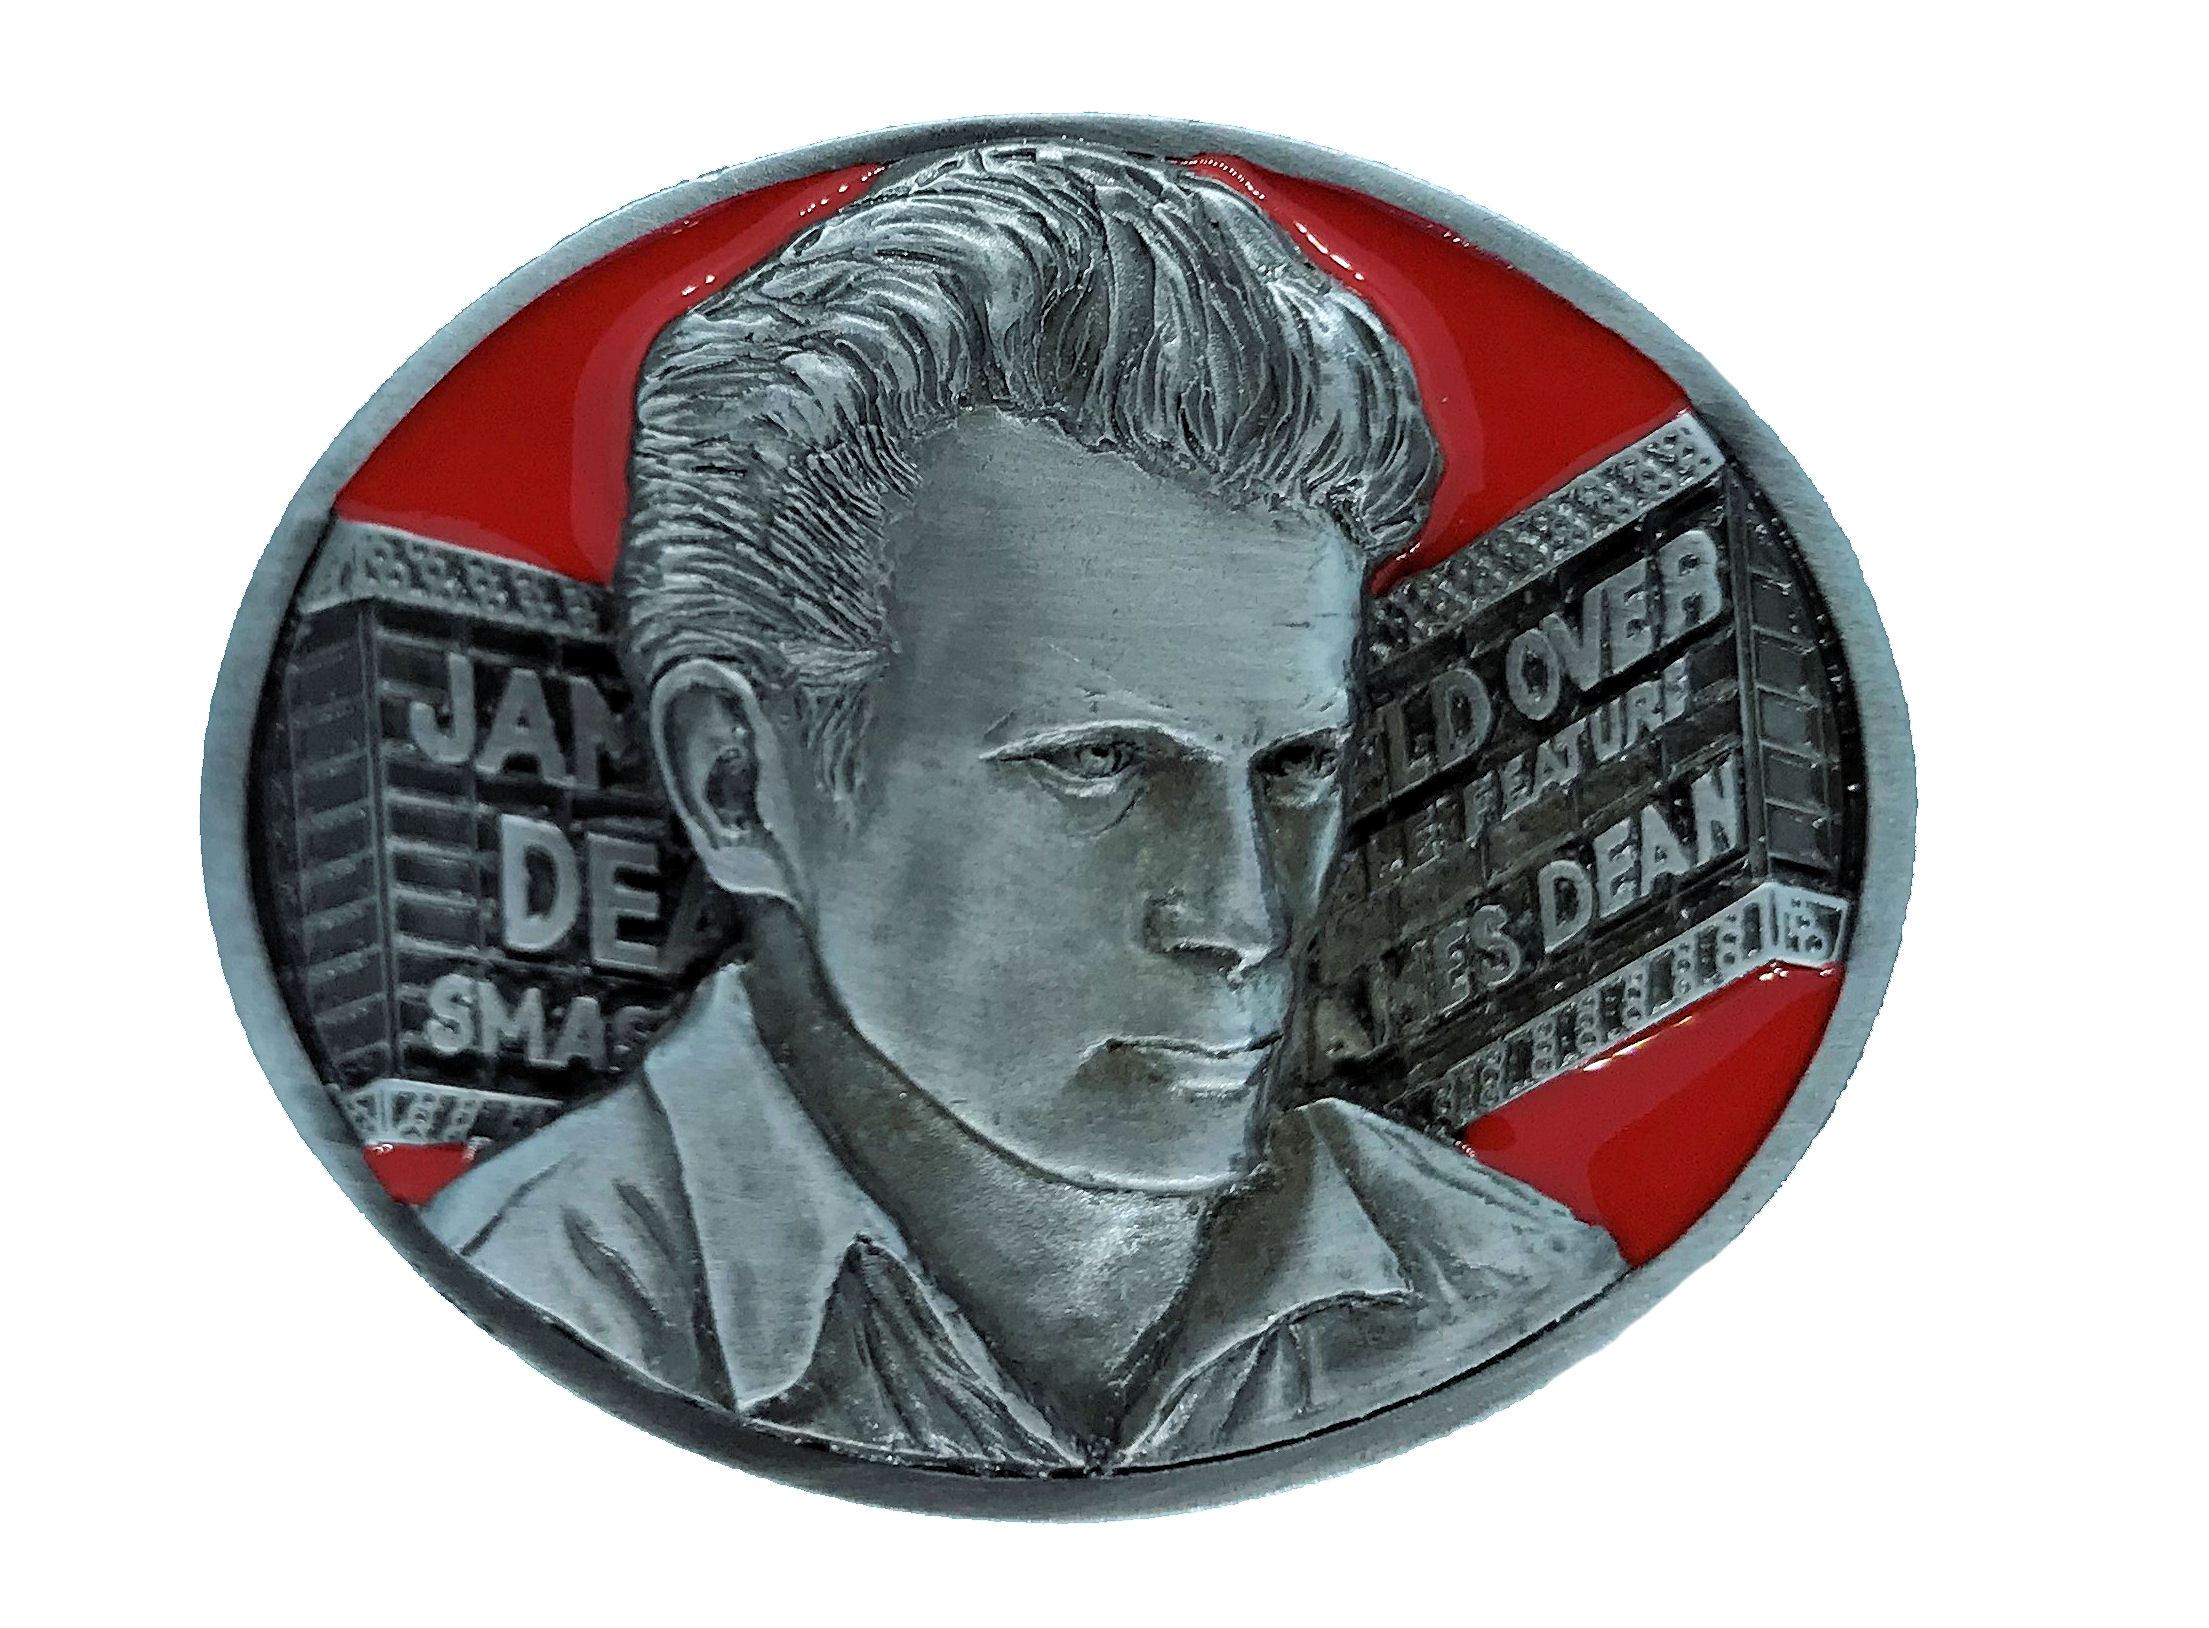 James Dean - Marquee Red Belt Buckle